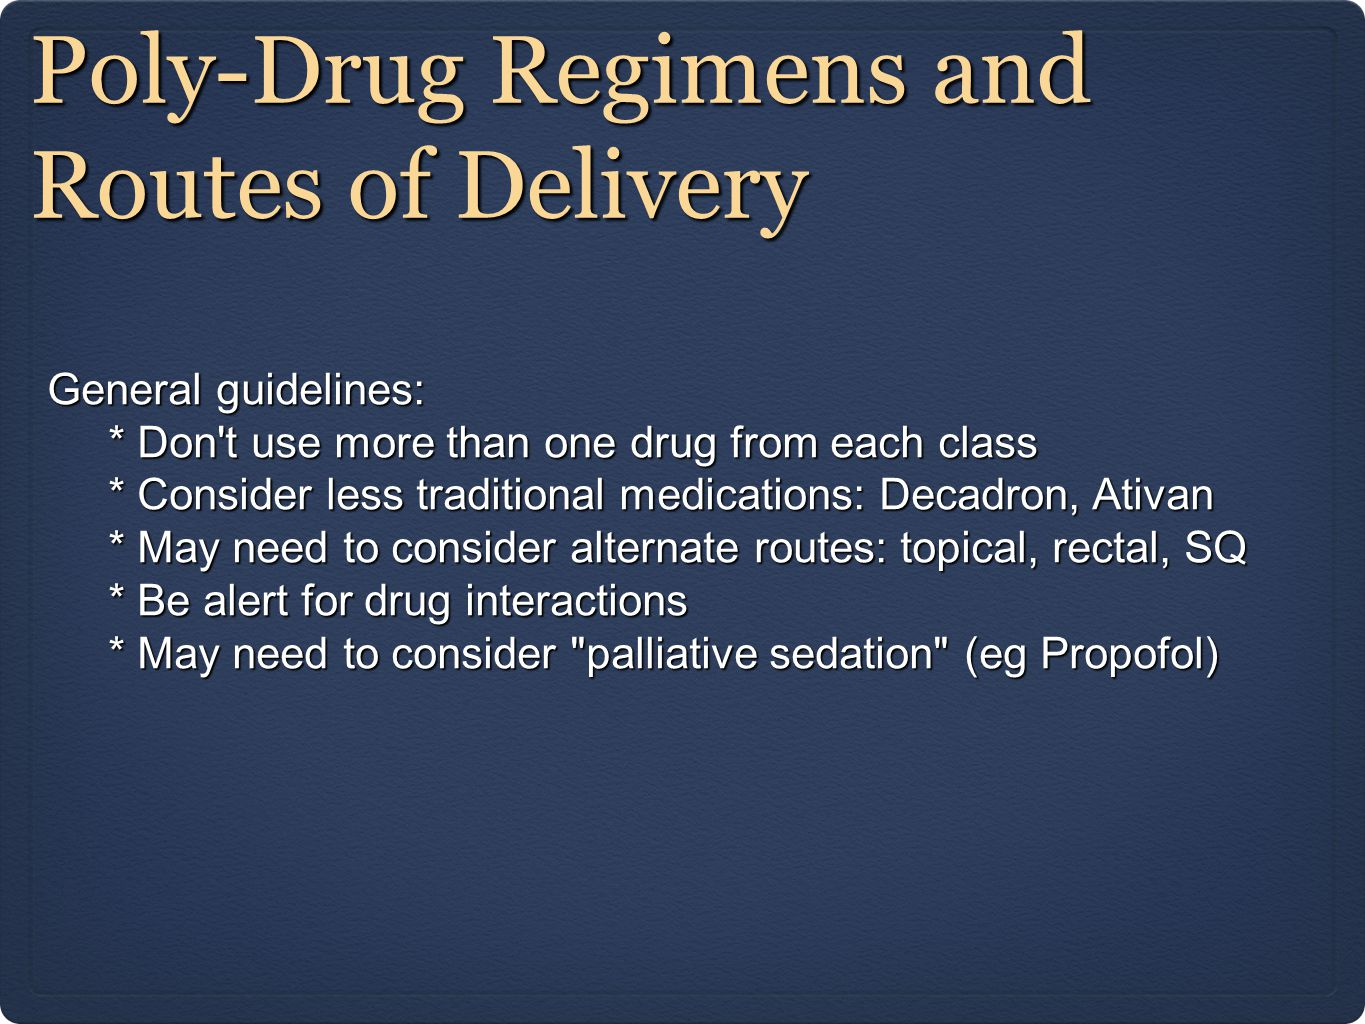 Poly-Drug Regimens and Routes of Delivery